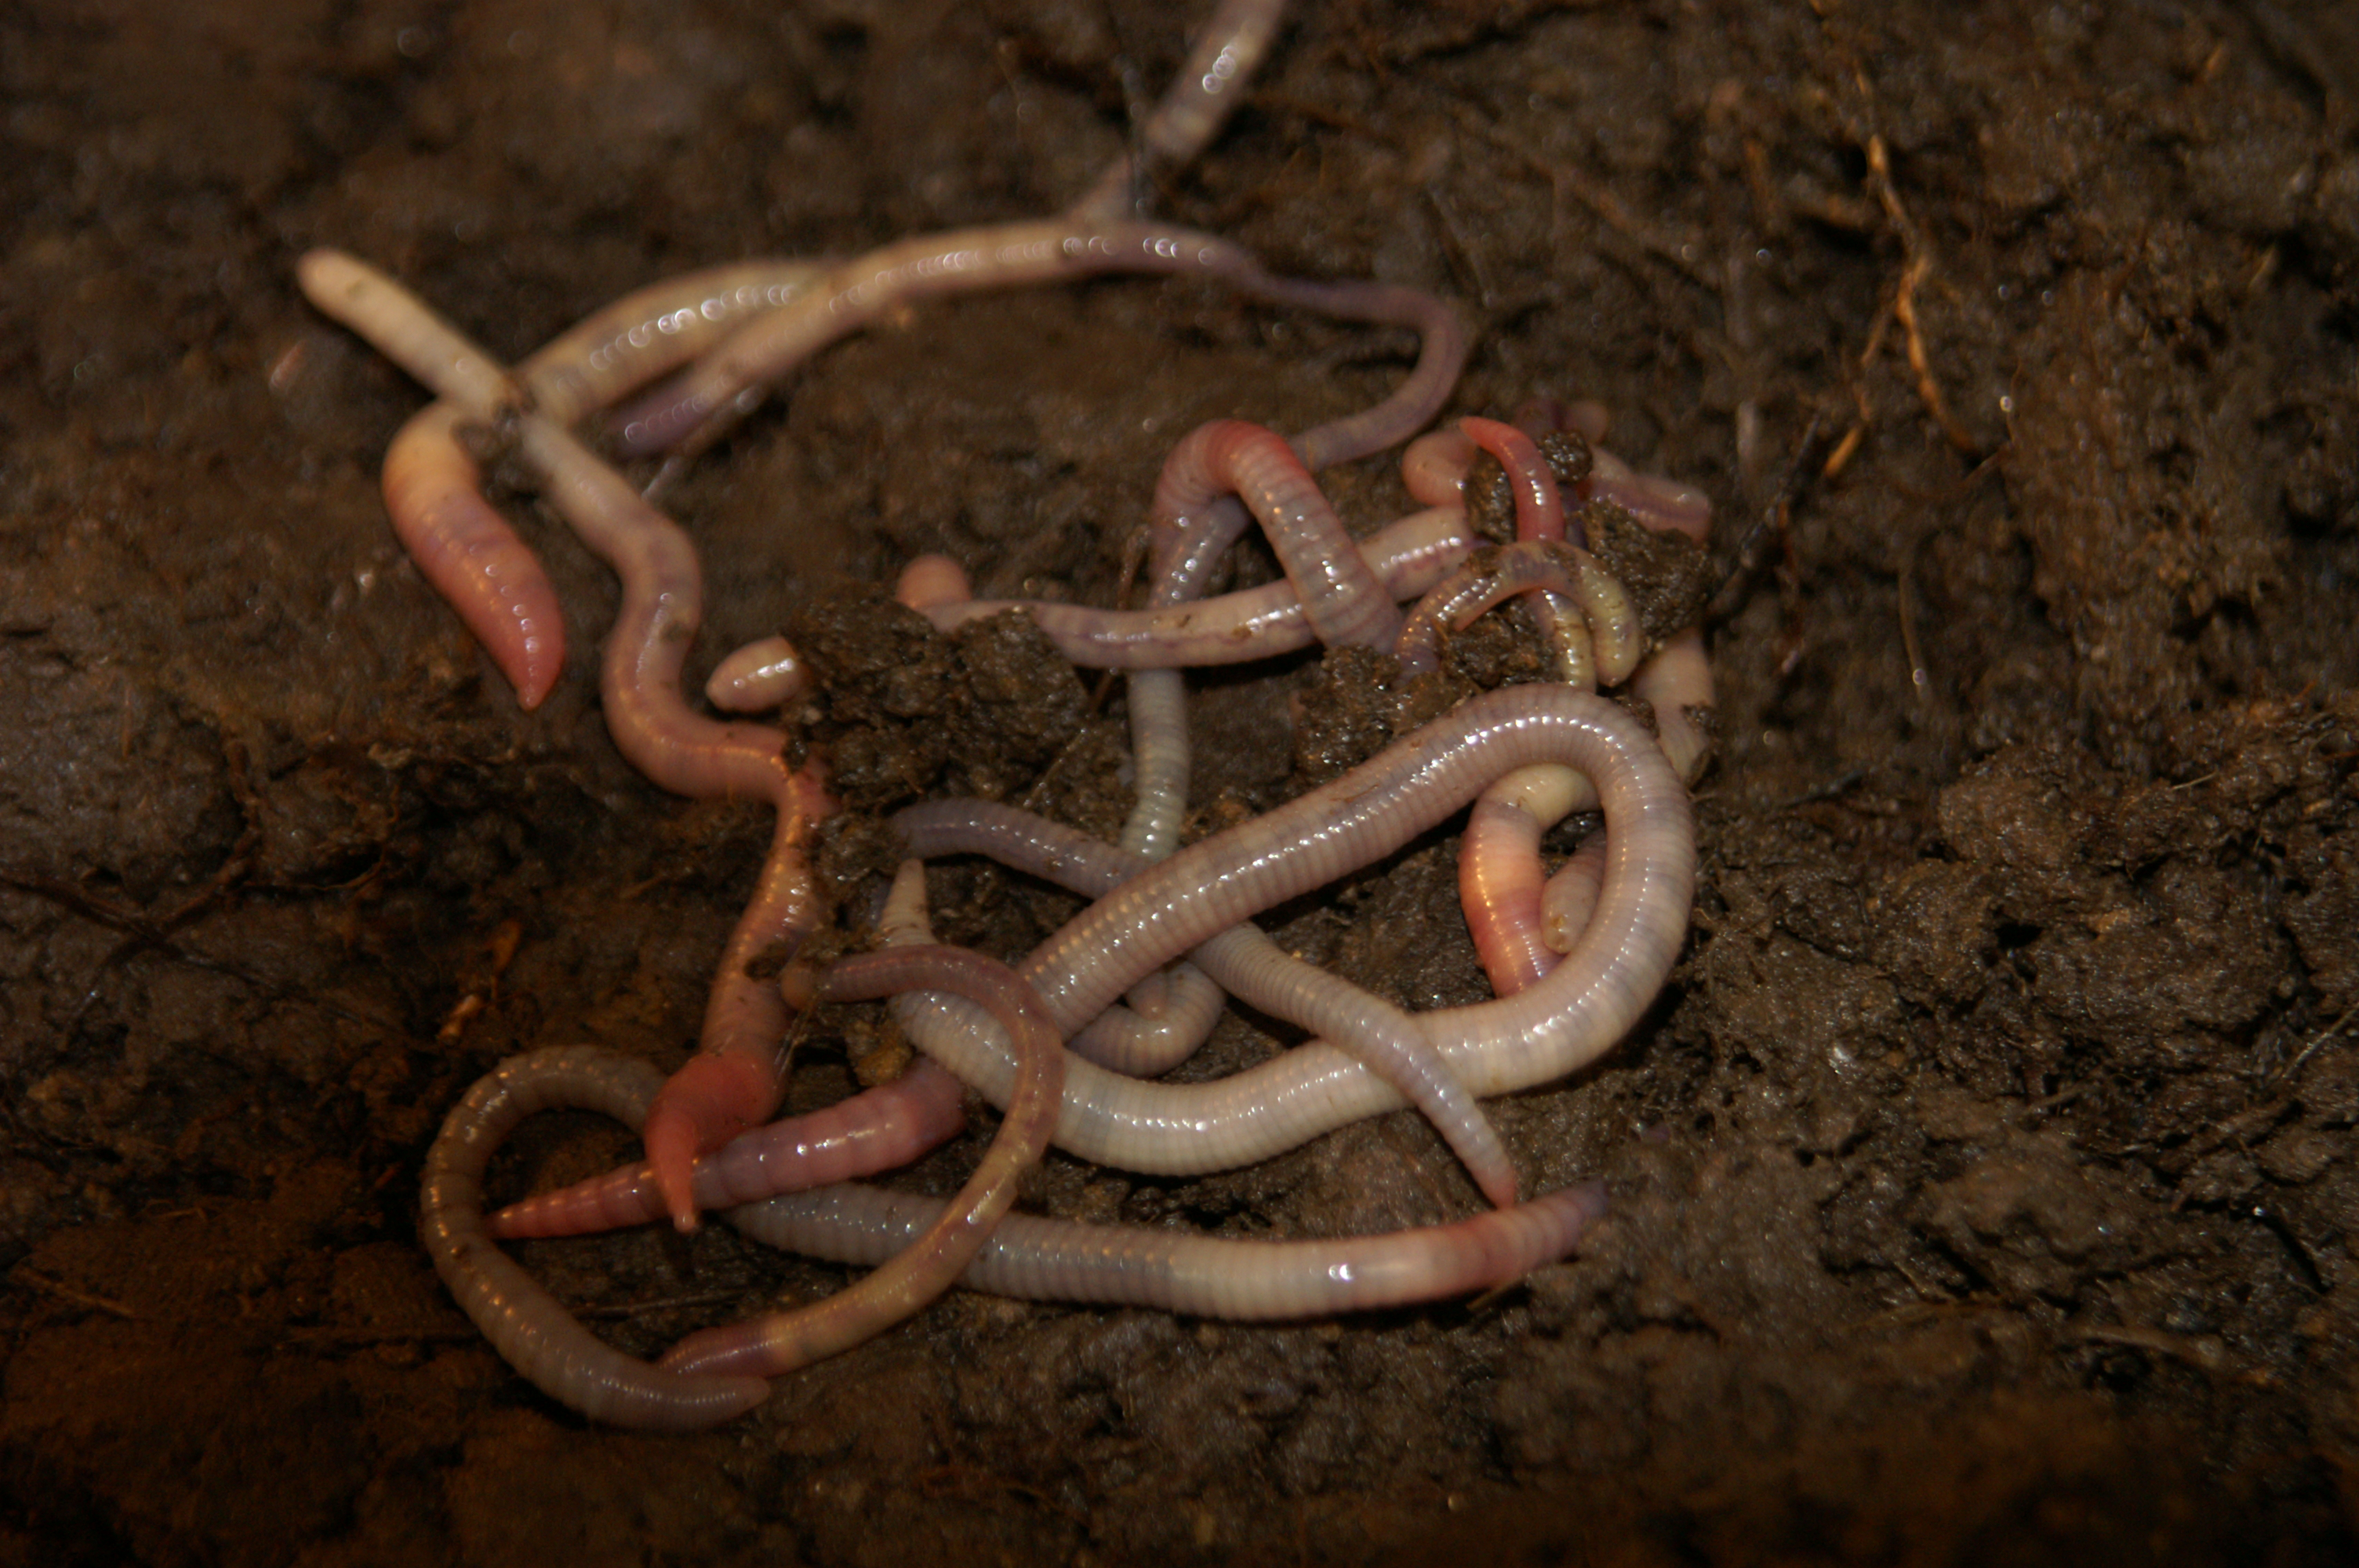 Ecology of New Zealand earthworms